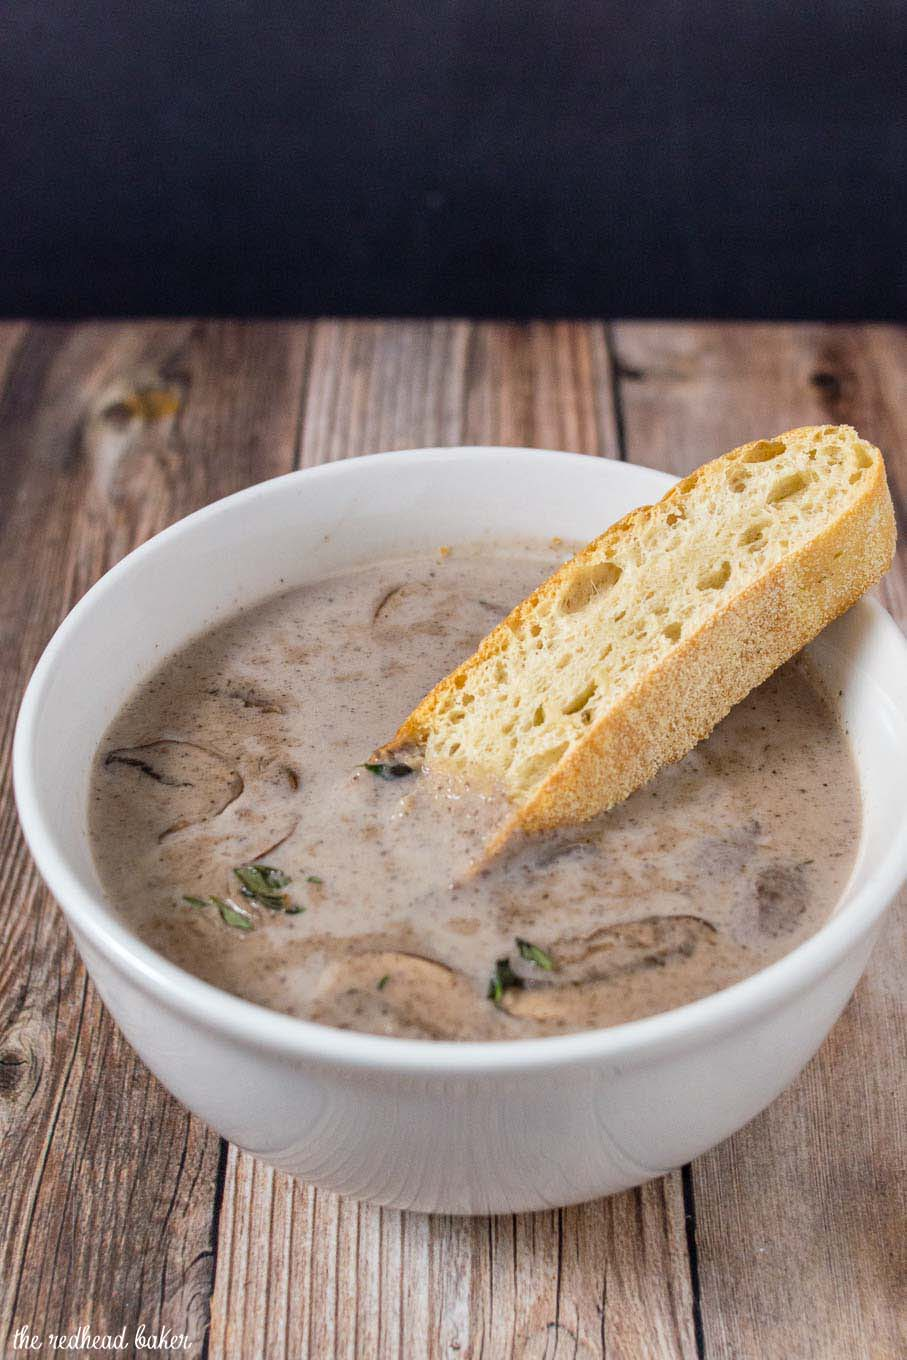 A piece of ciabatta bread being dipped in a bowl of port wine cream of mushroom soup